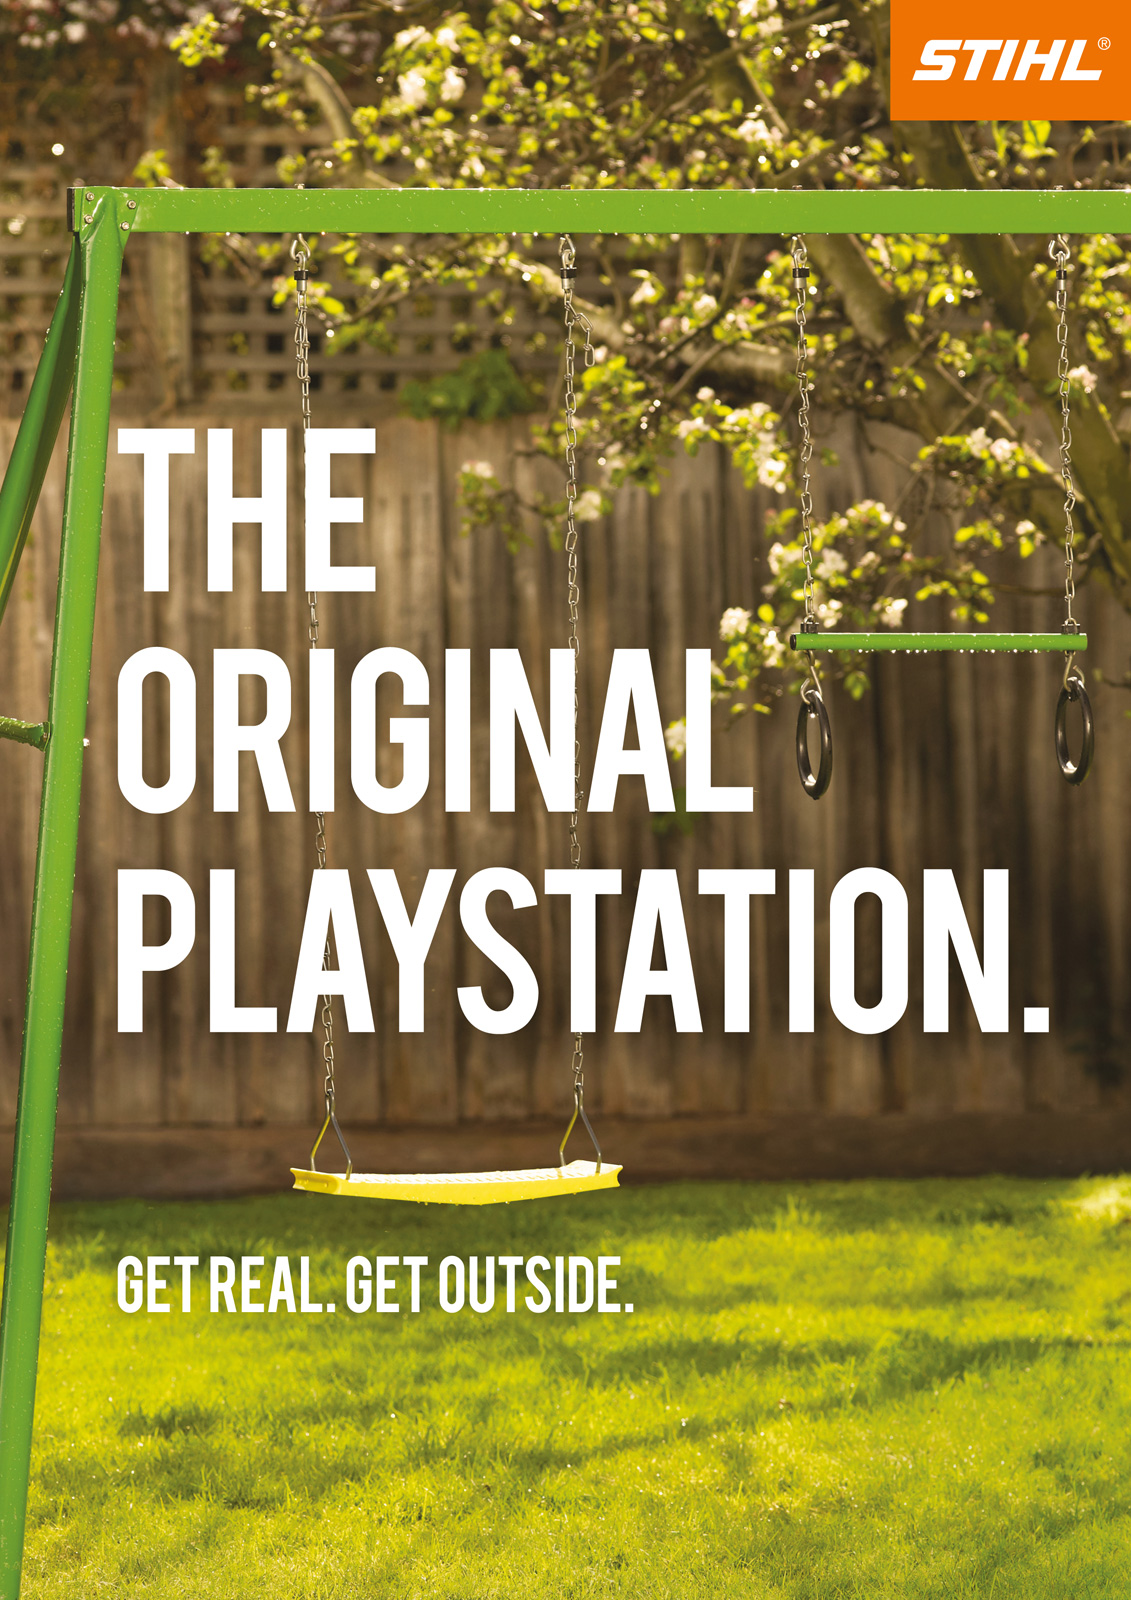 Stihl Print Advert By TBWA: The Original Playstation   Ads of the World™